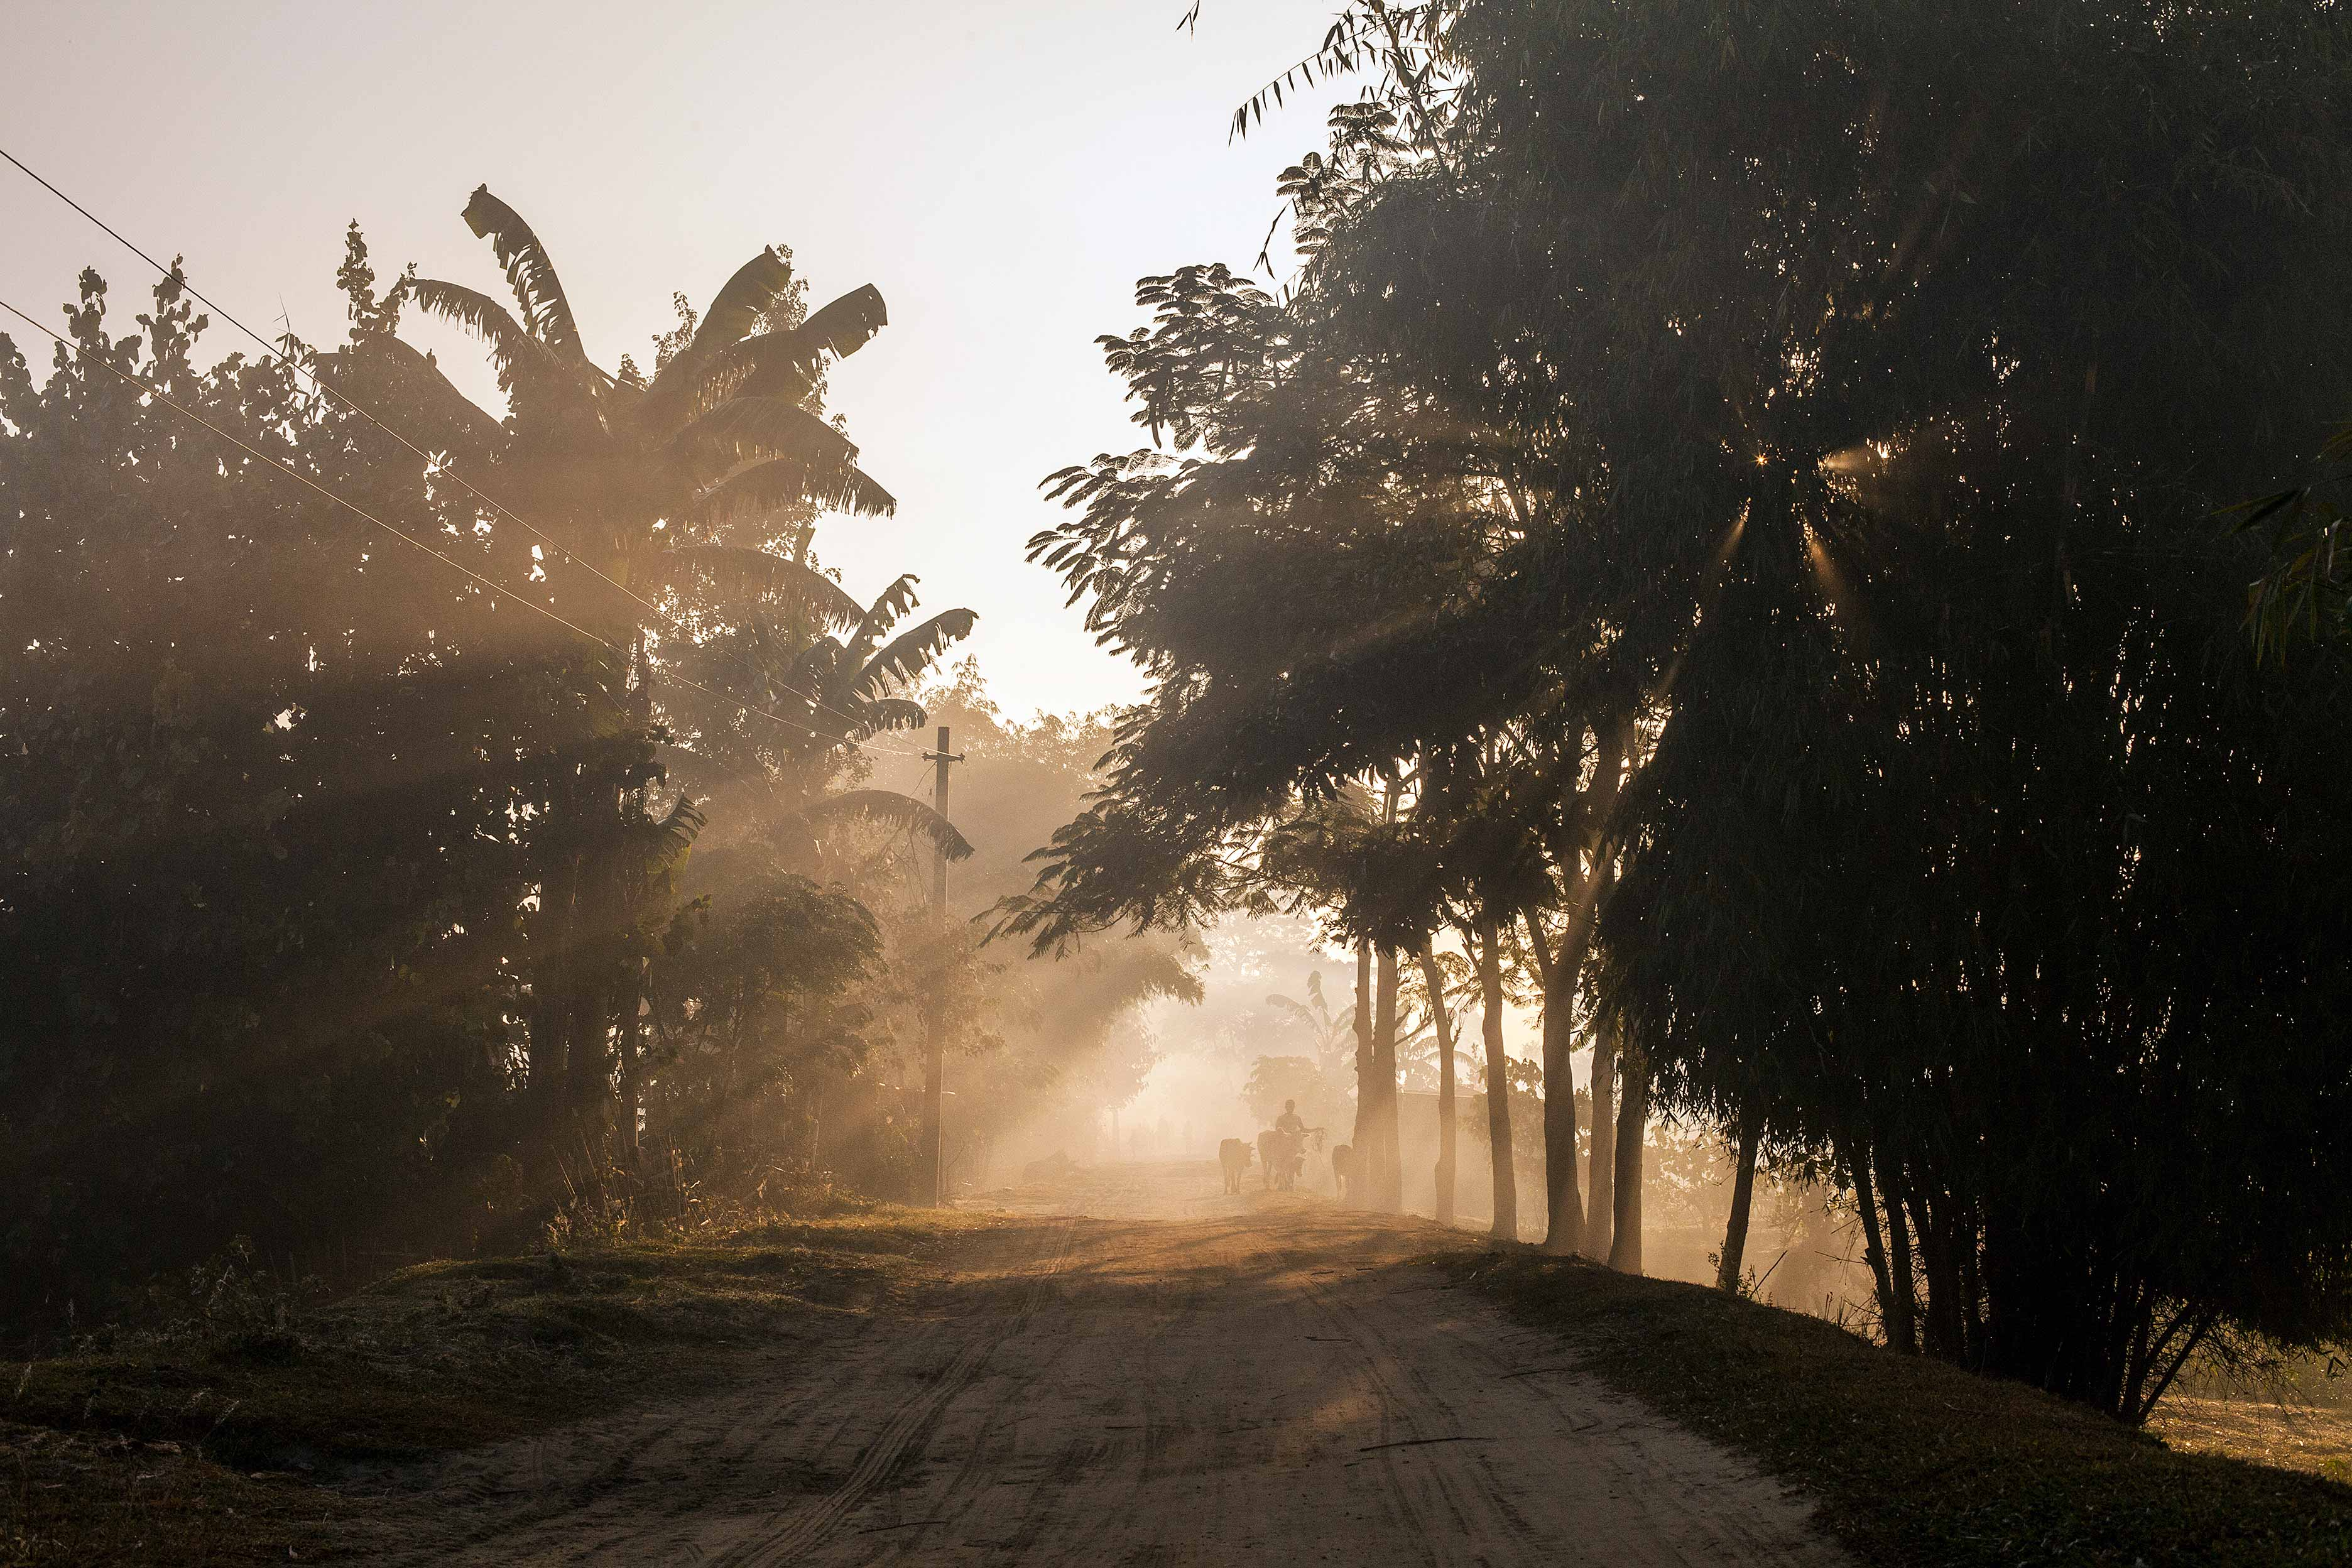 Early morning herder, Majuli Island - runner-up in the Wanderlust Photography Awards and winner of two other travel photography competitions (2011)